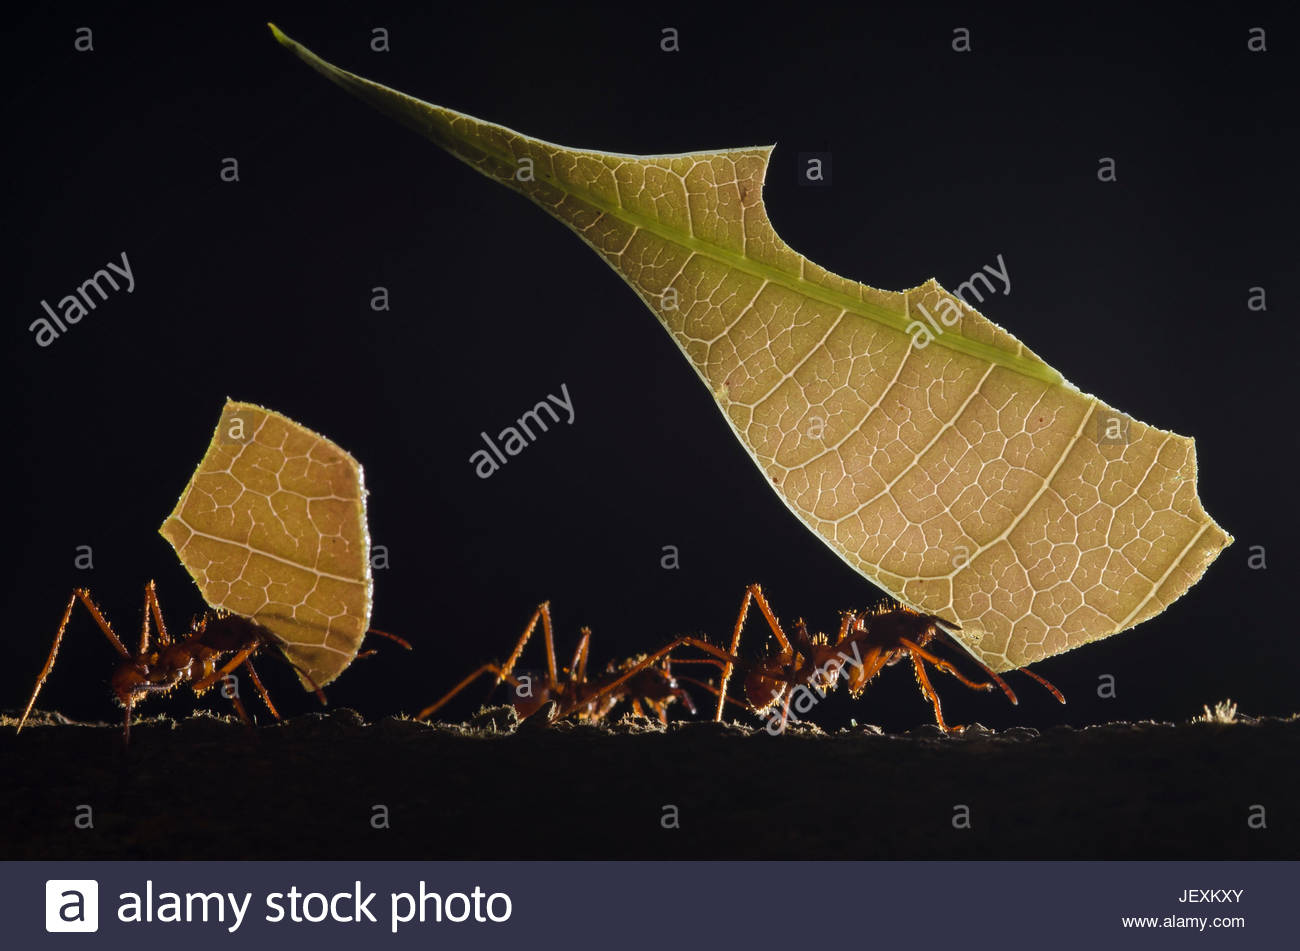 Leaf cutter ants carrying leaves back to their nest to cultivate a fungus. - Stock Image